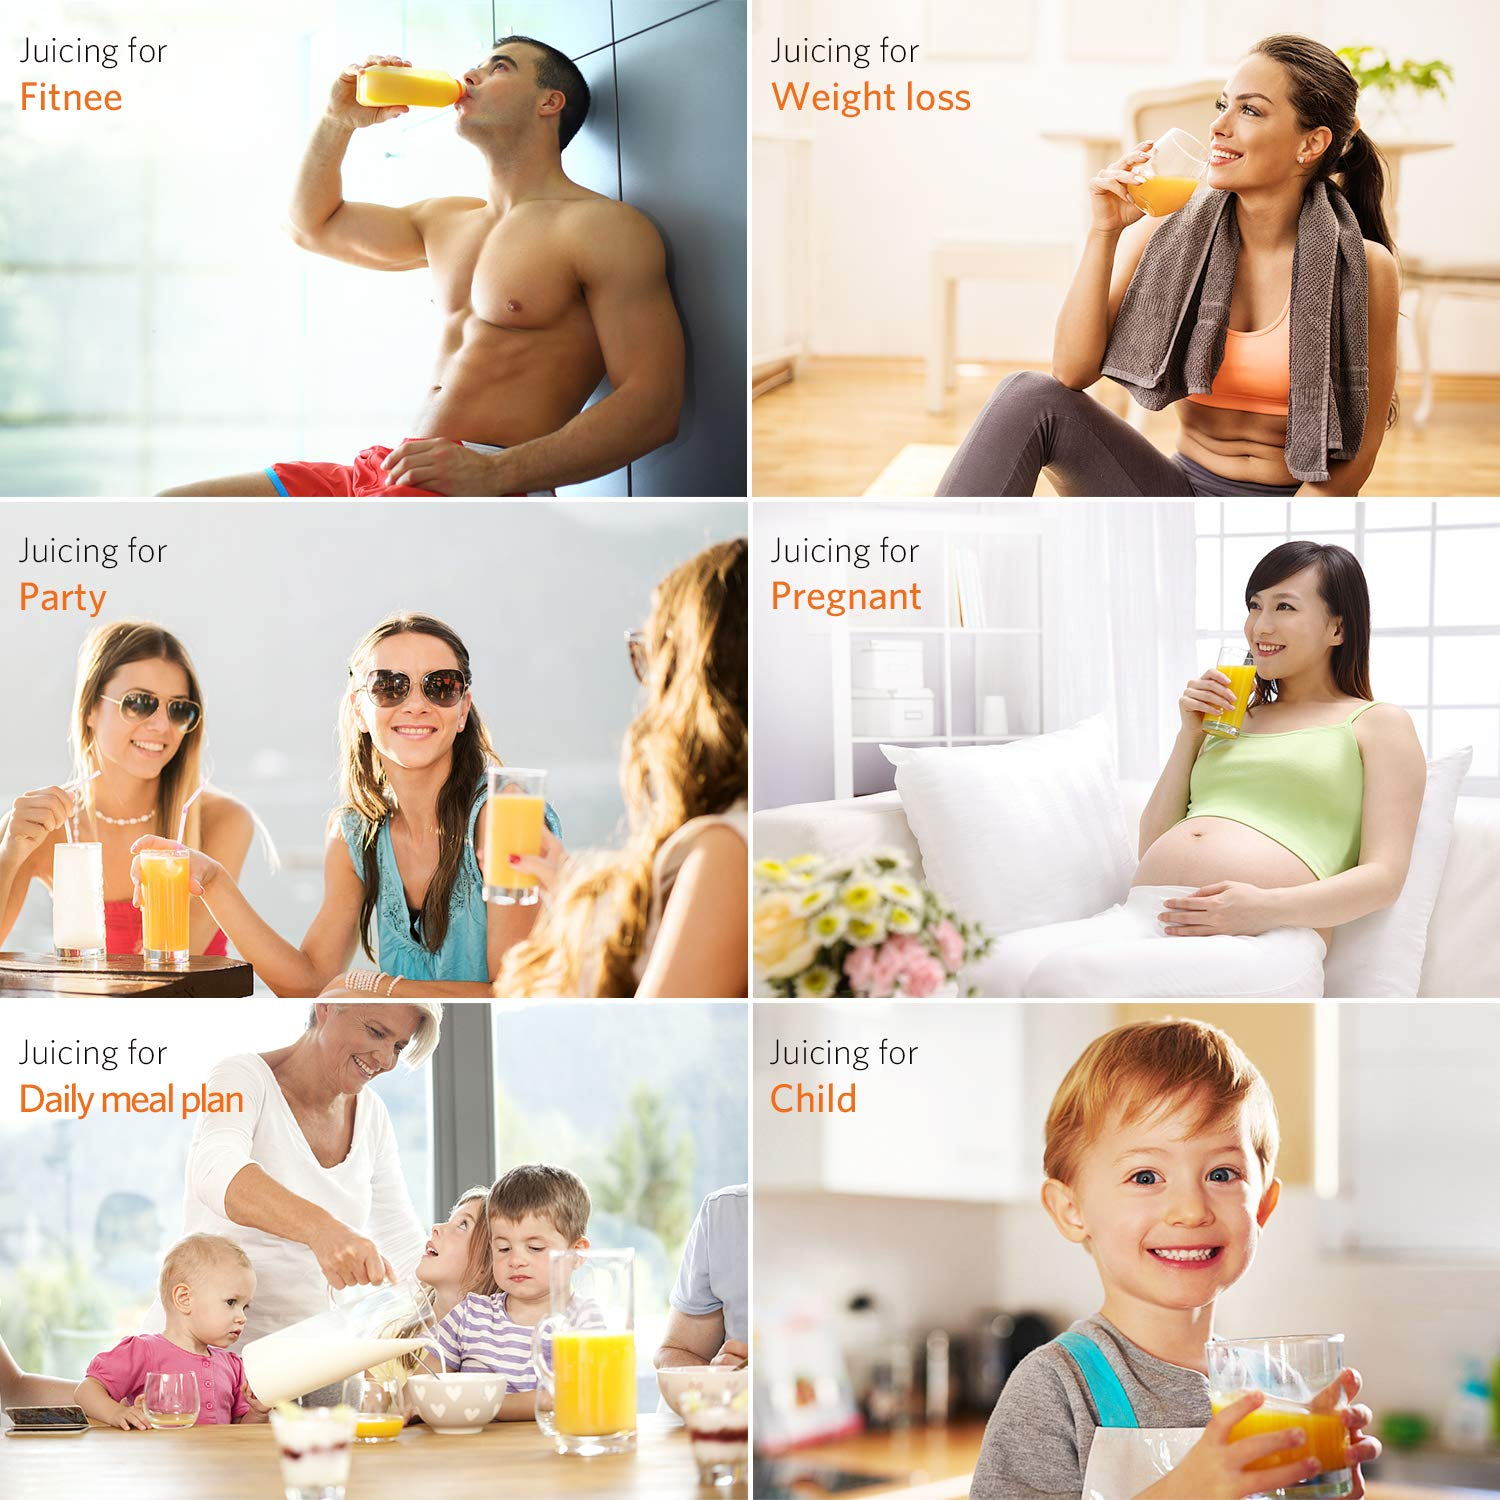 Homever Juicer Machines, Slow Masticating Juicer for Fruits and Vegetables, Quiet Motor, Reverse Function, Easy to Clean Hight Nutrient Cold Press Juicer Machine with Juice Cup & Brush, BPA-Free by Homever (Image #9)